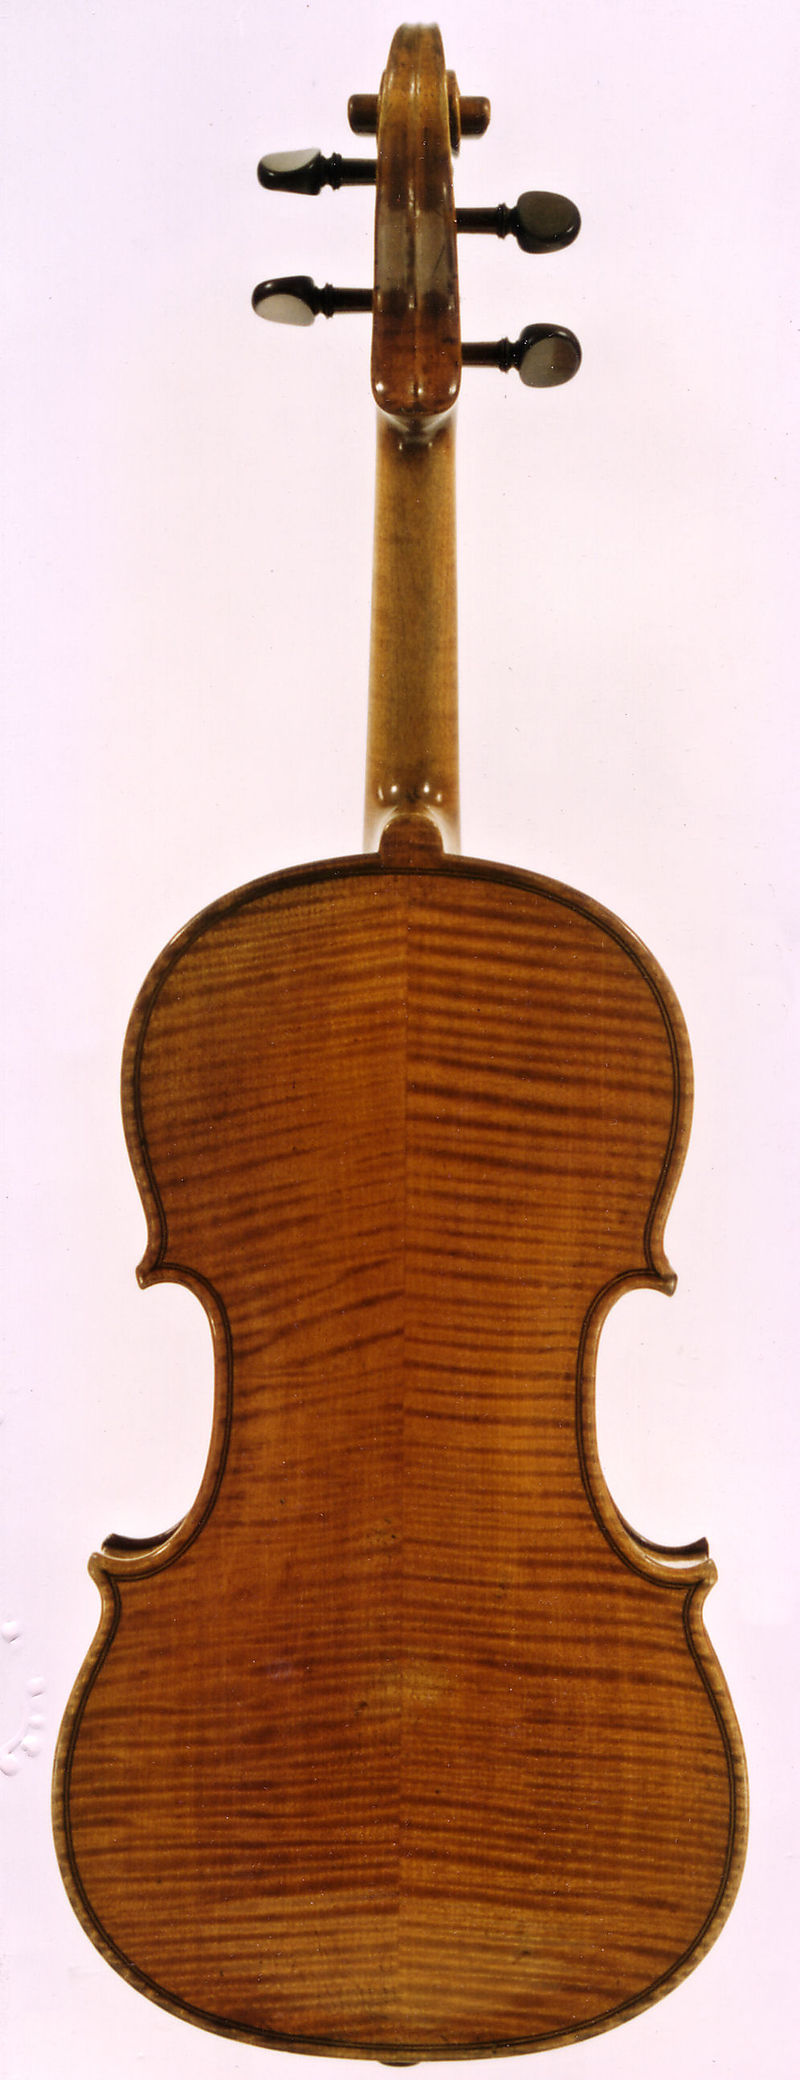 Cuypers 1794 back